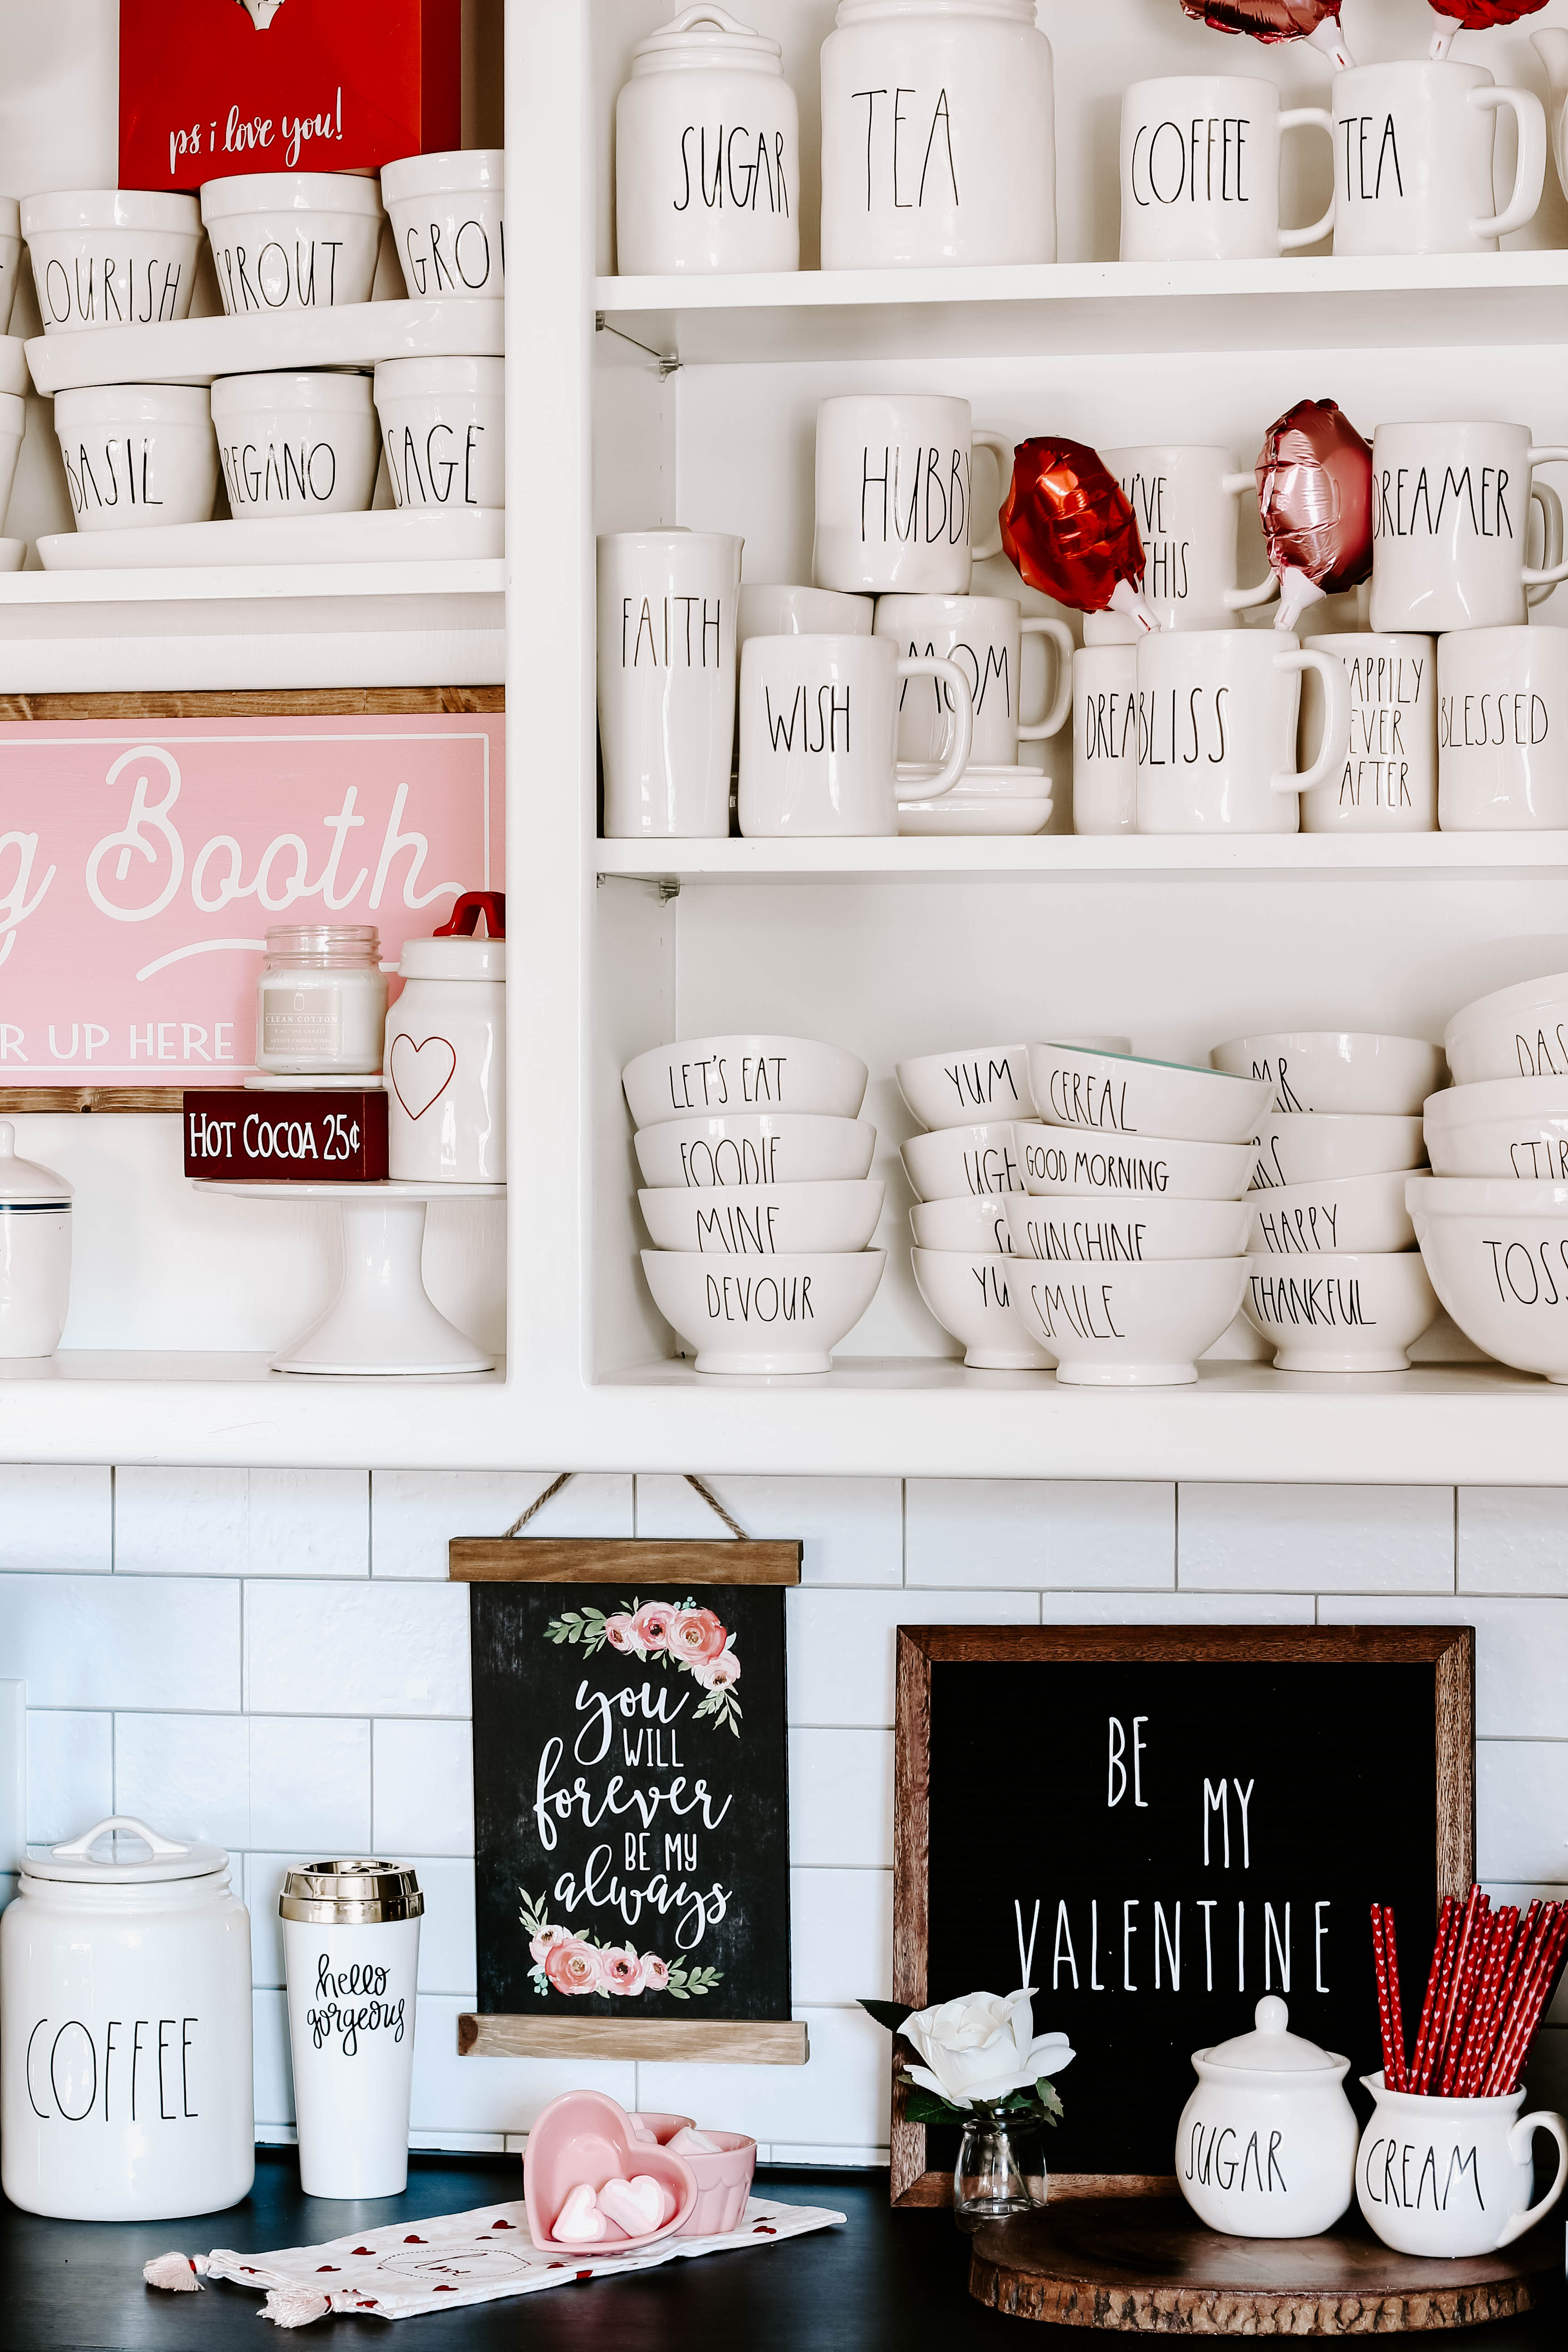 See how I created a farmhouse style Valentine coffee bar with lots of Rae Dunn and small touches of pink and red Valentine decor.